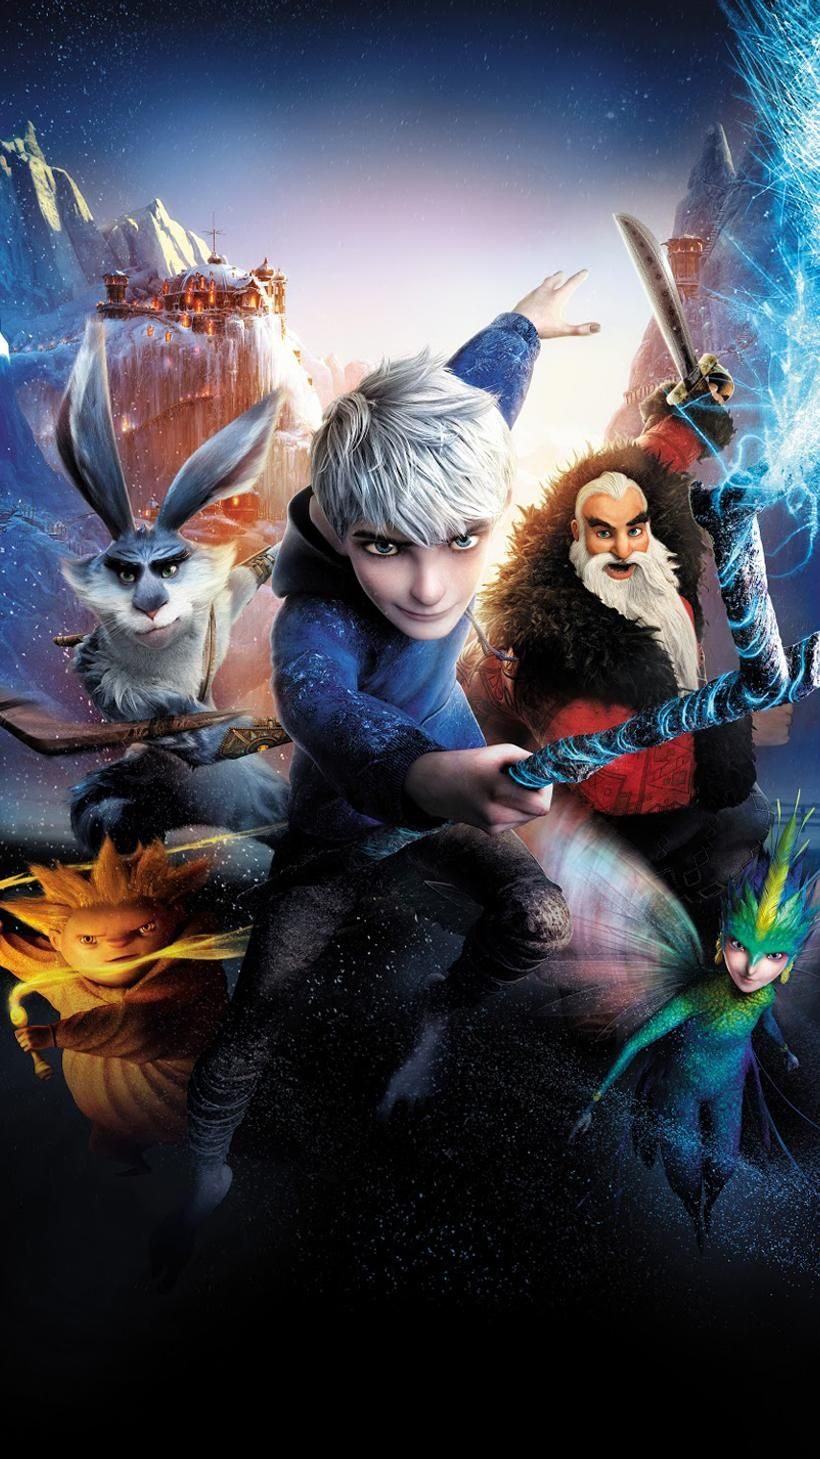 Mulan 2020 Phone Wallpaper Moviemania In 2020 Rise Of The Guardians Cartoon Wallpaper Jack Frost